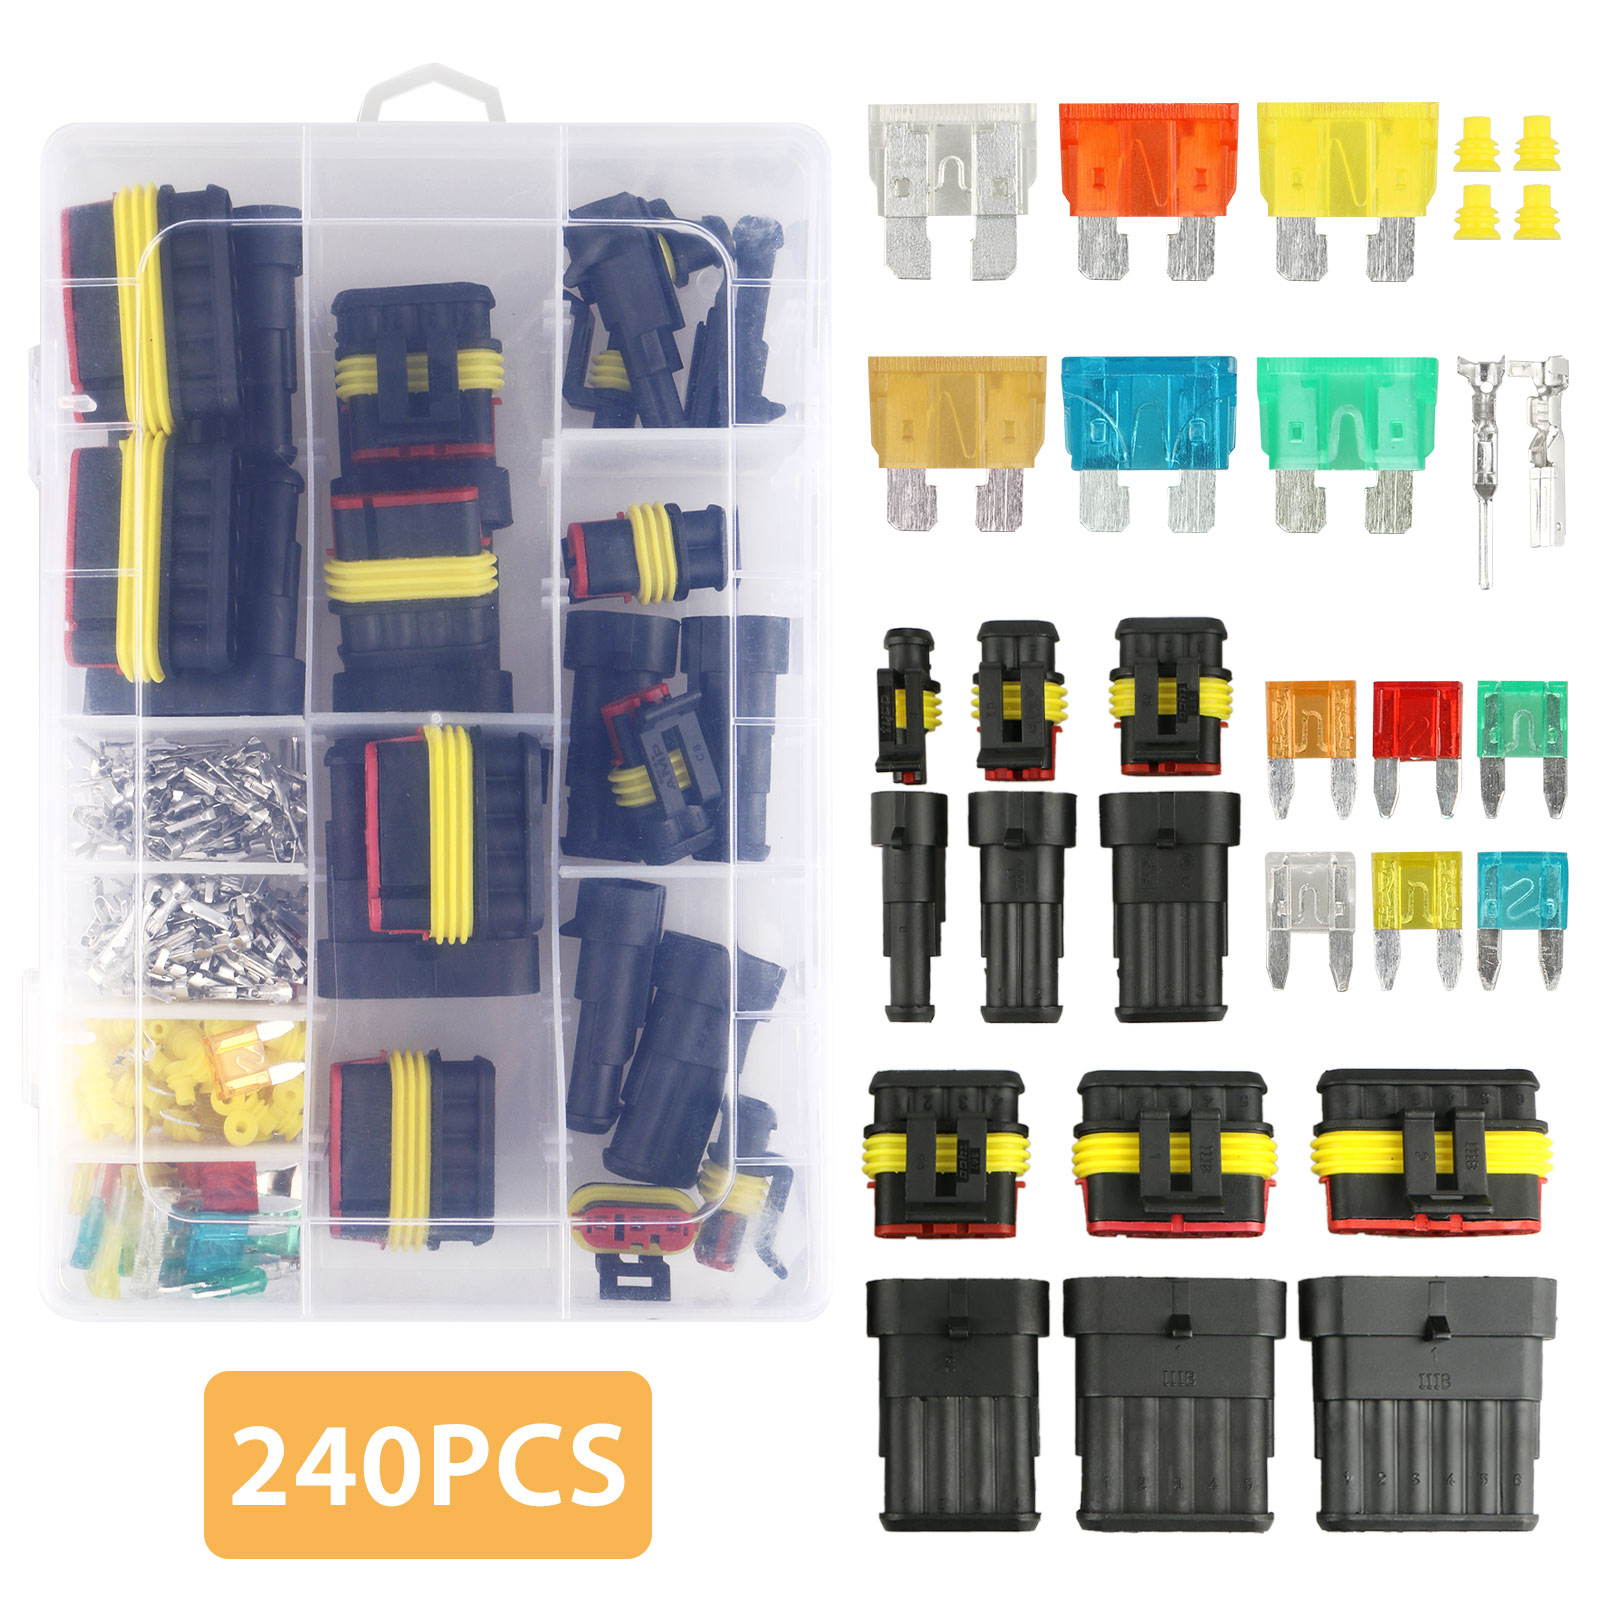 10 X Car Auto 4 Pin Way Sealed Waterproof Electrical Wire Connector